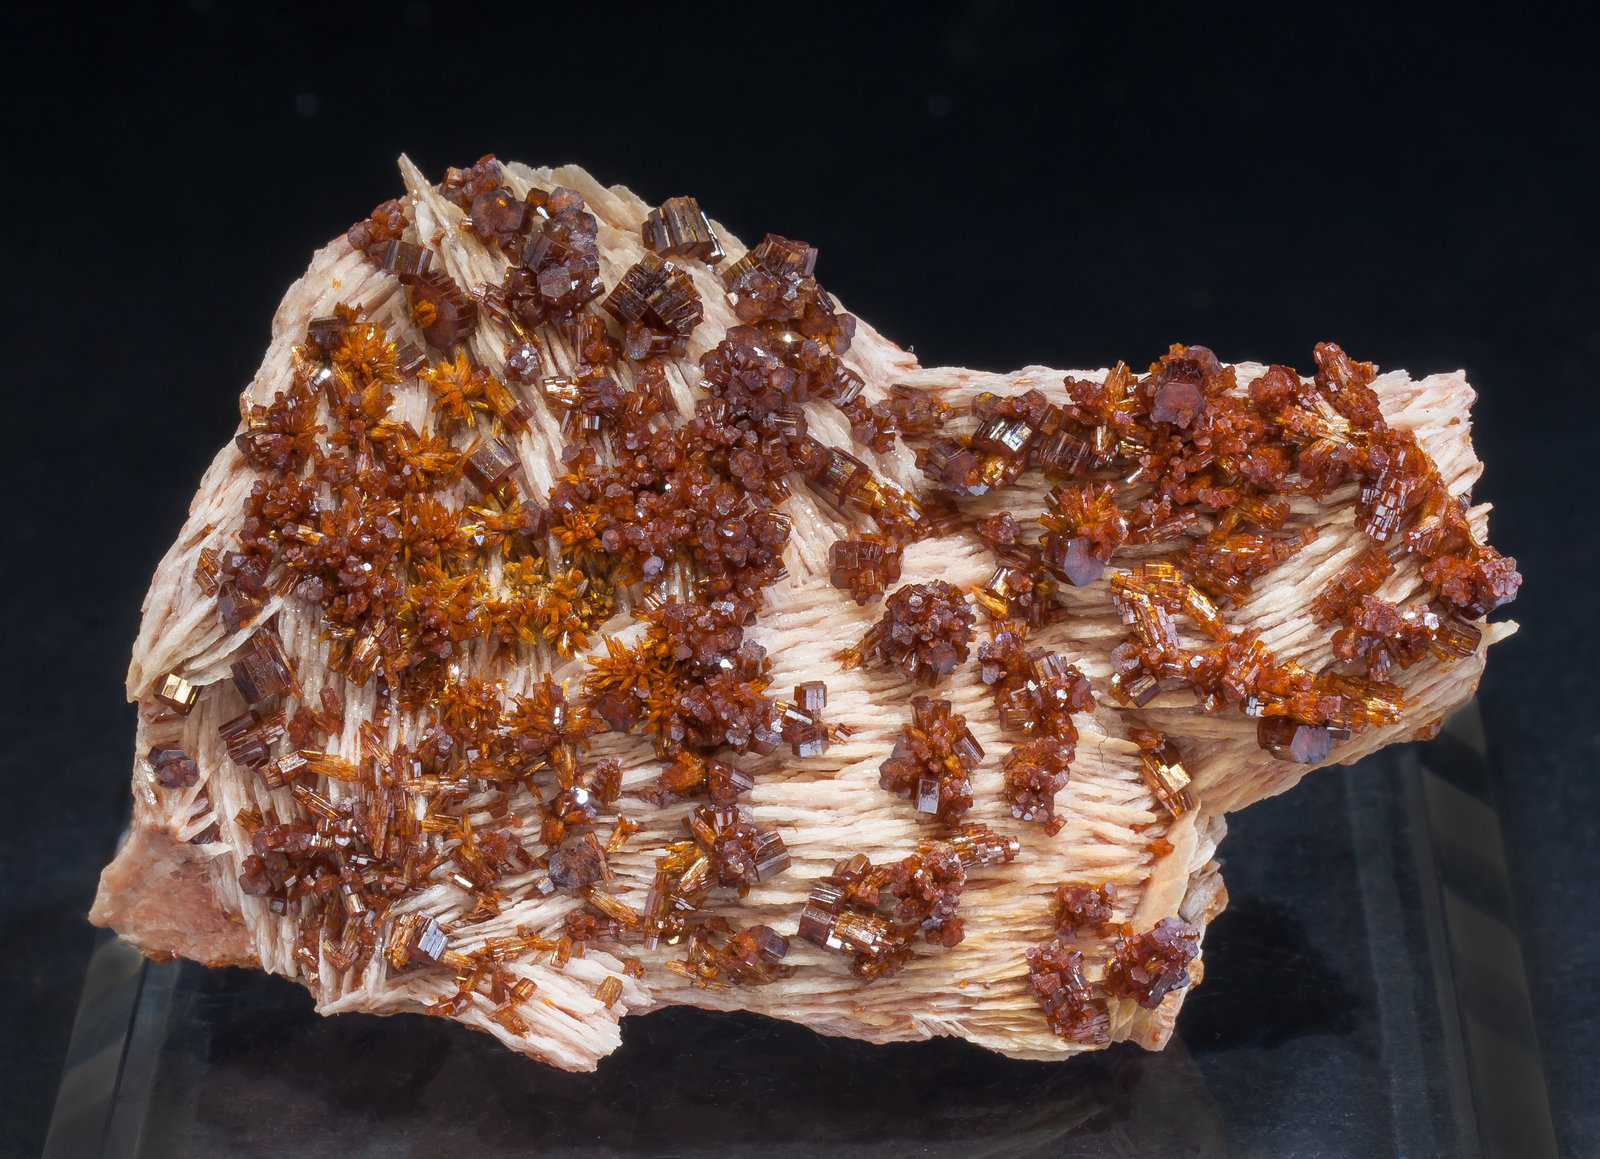 specimens/s_imagesAM2/Vanadinite-EJ56AM2f.jpg